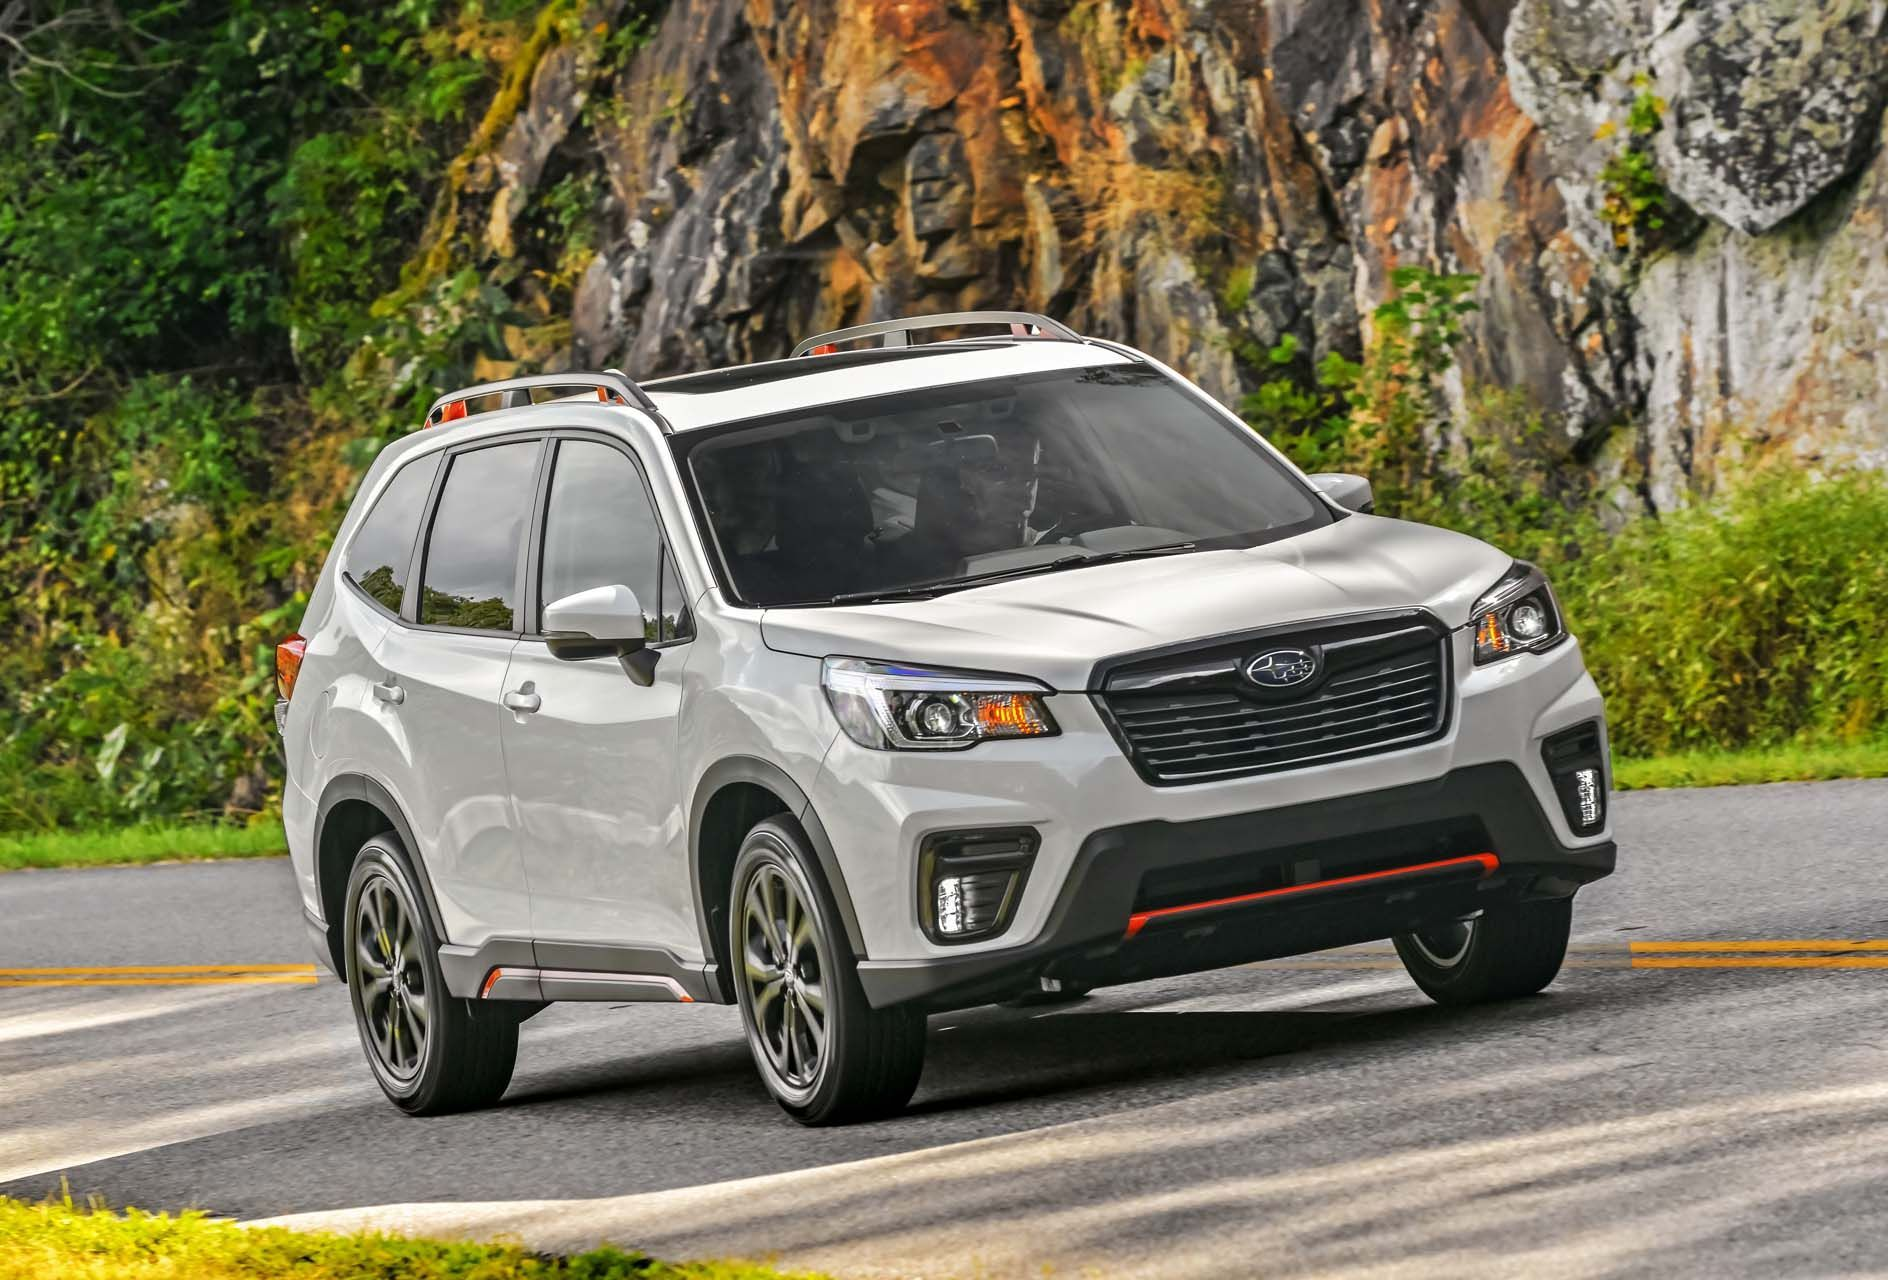 Subaru Forester 2020 Ground Clearance Wallpaper Subaru Outback Subaru Forester Subaru